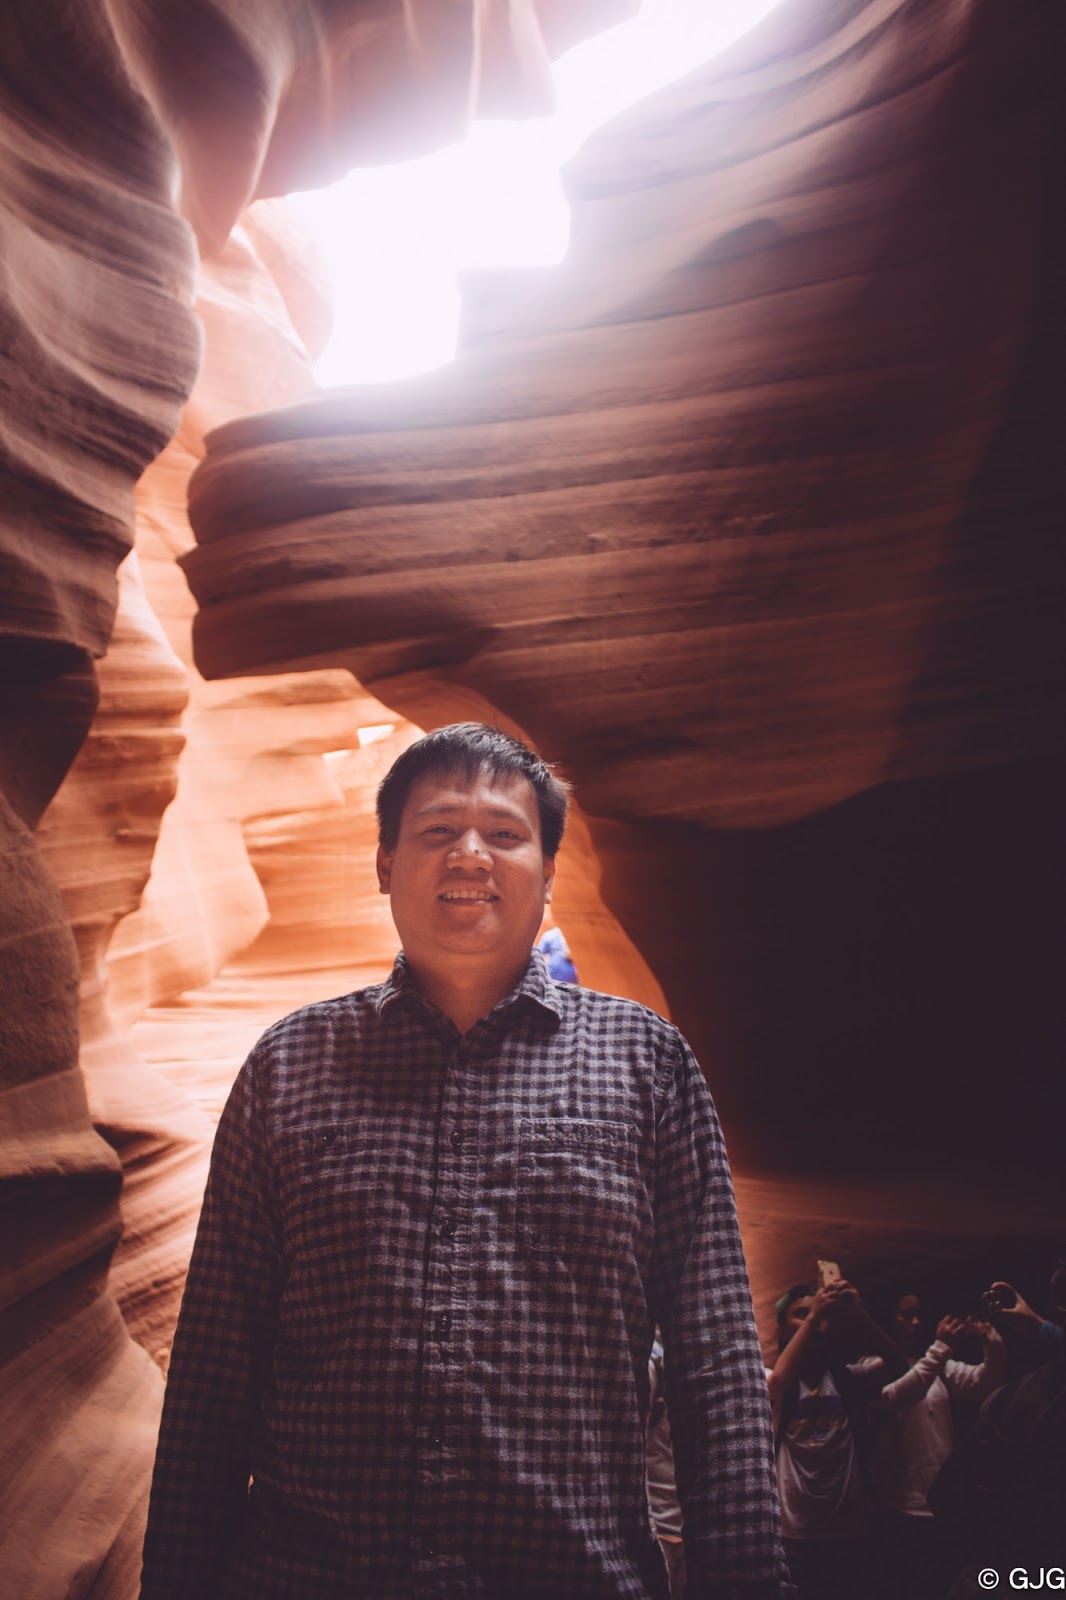 The Lower Antelope Canyon: Things To Do in Arizona, USA